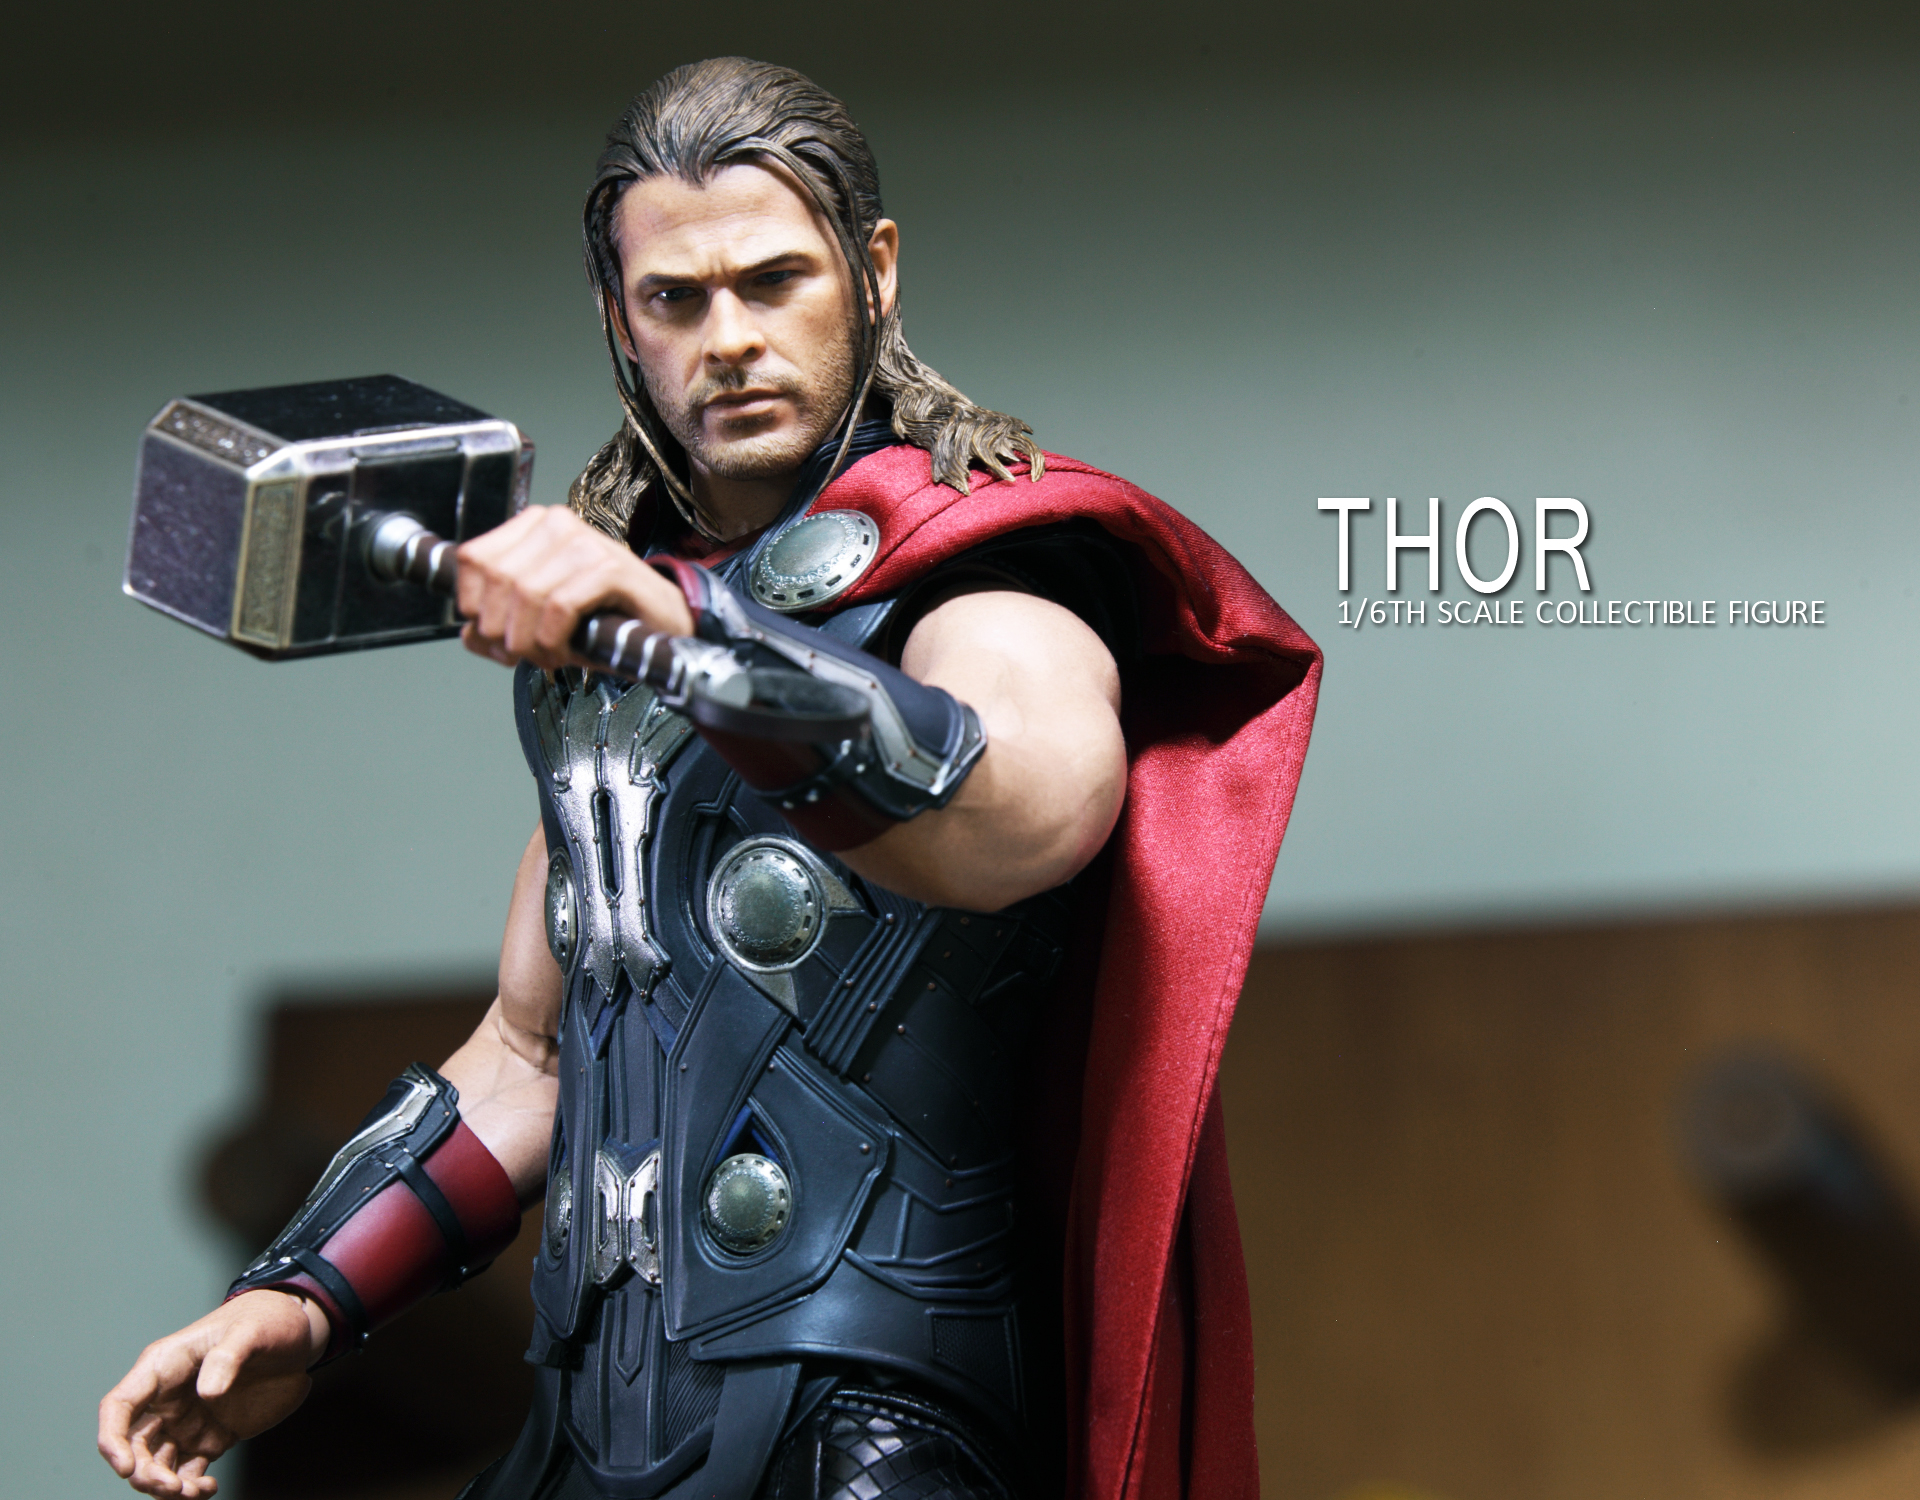 hot-toys-avengers-age-of-ultron-thor-picture-07